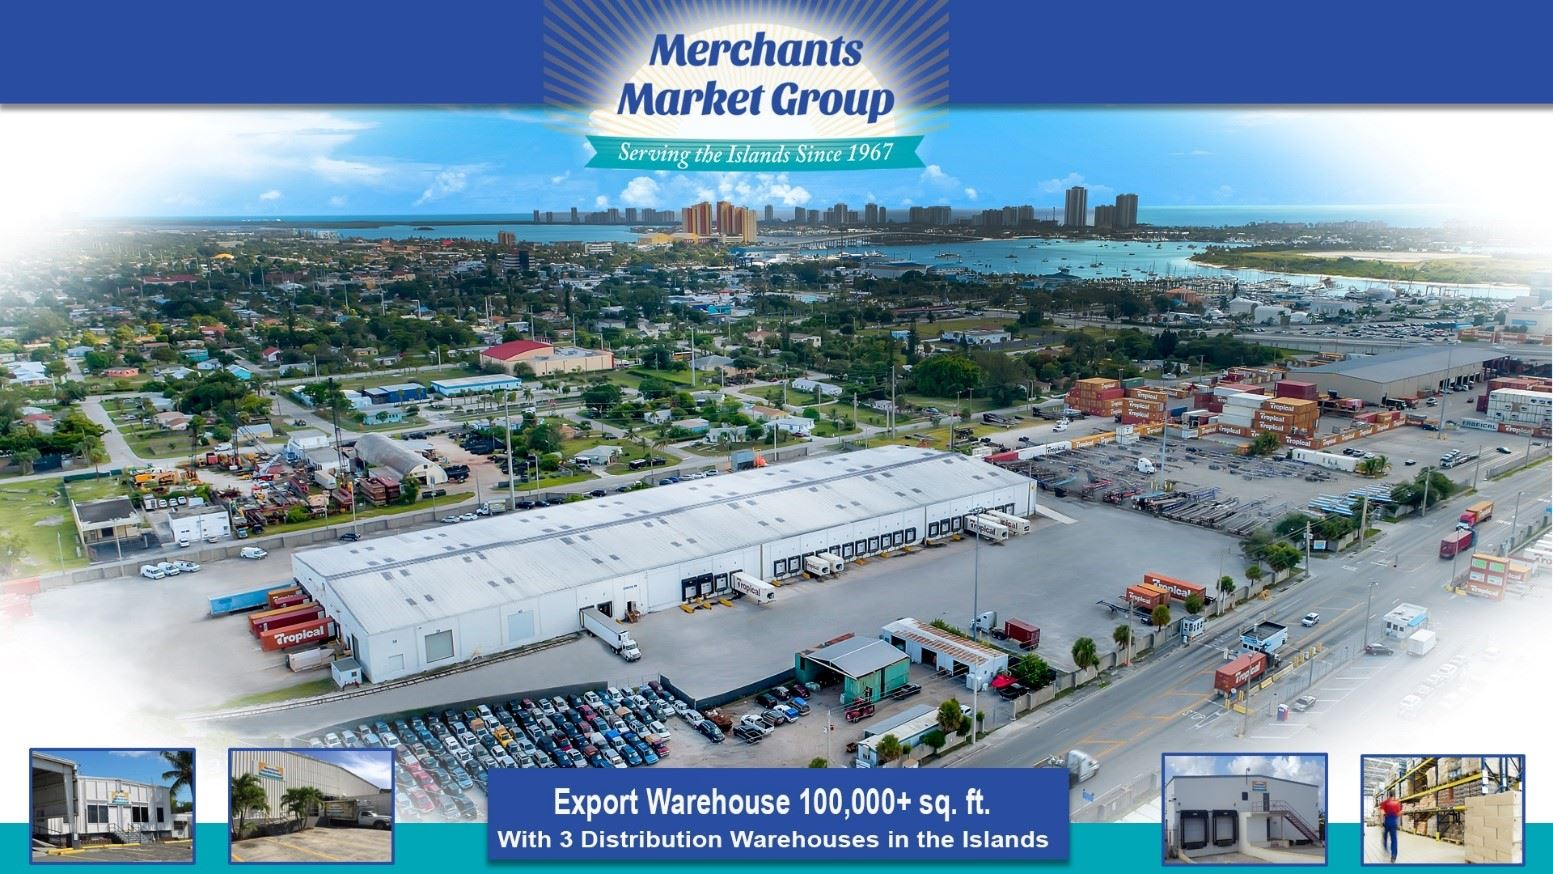 Merchants Market warehouse photo